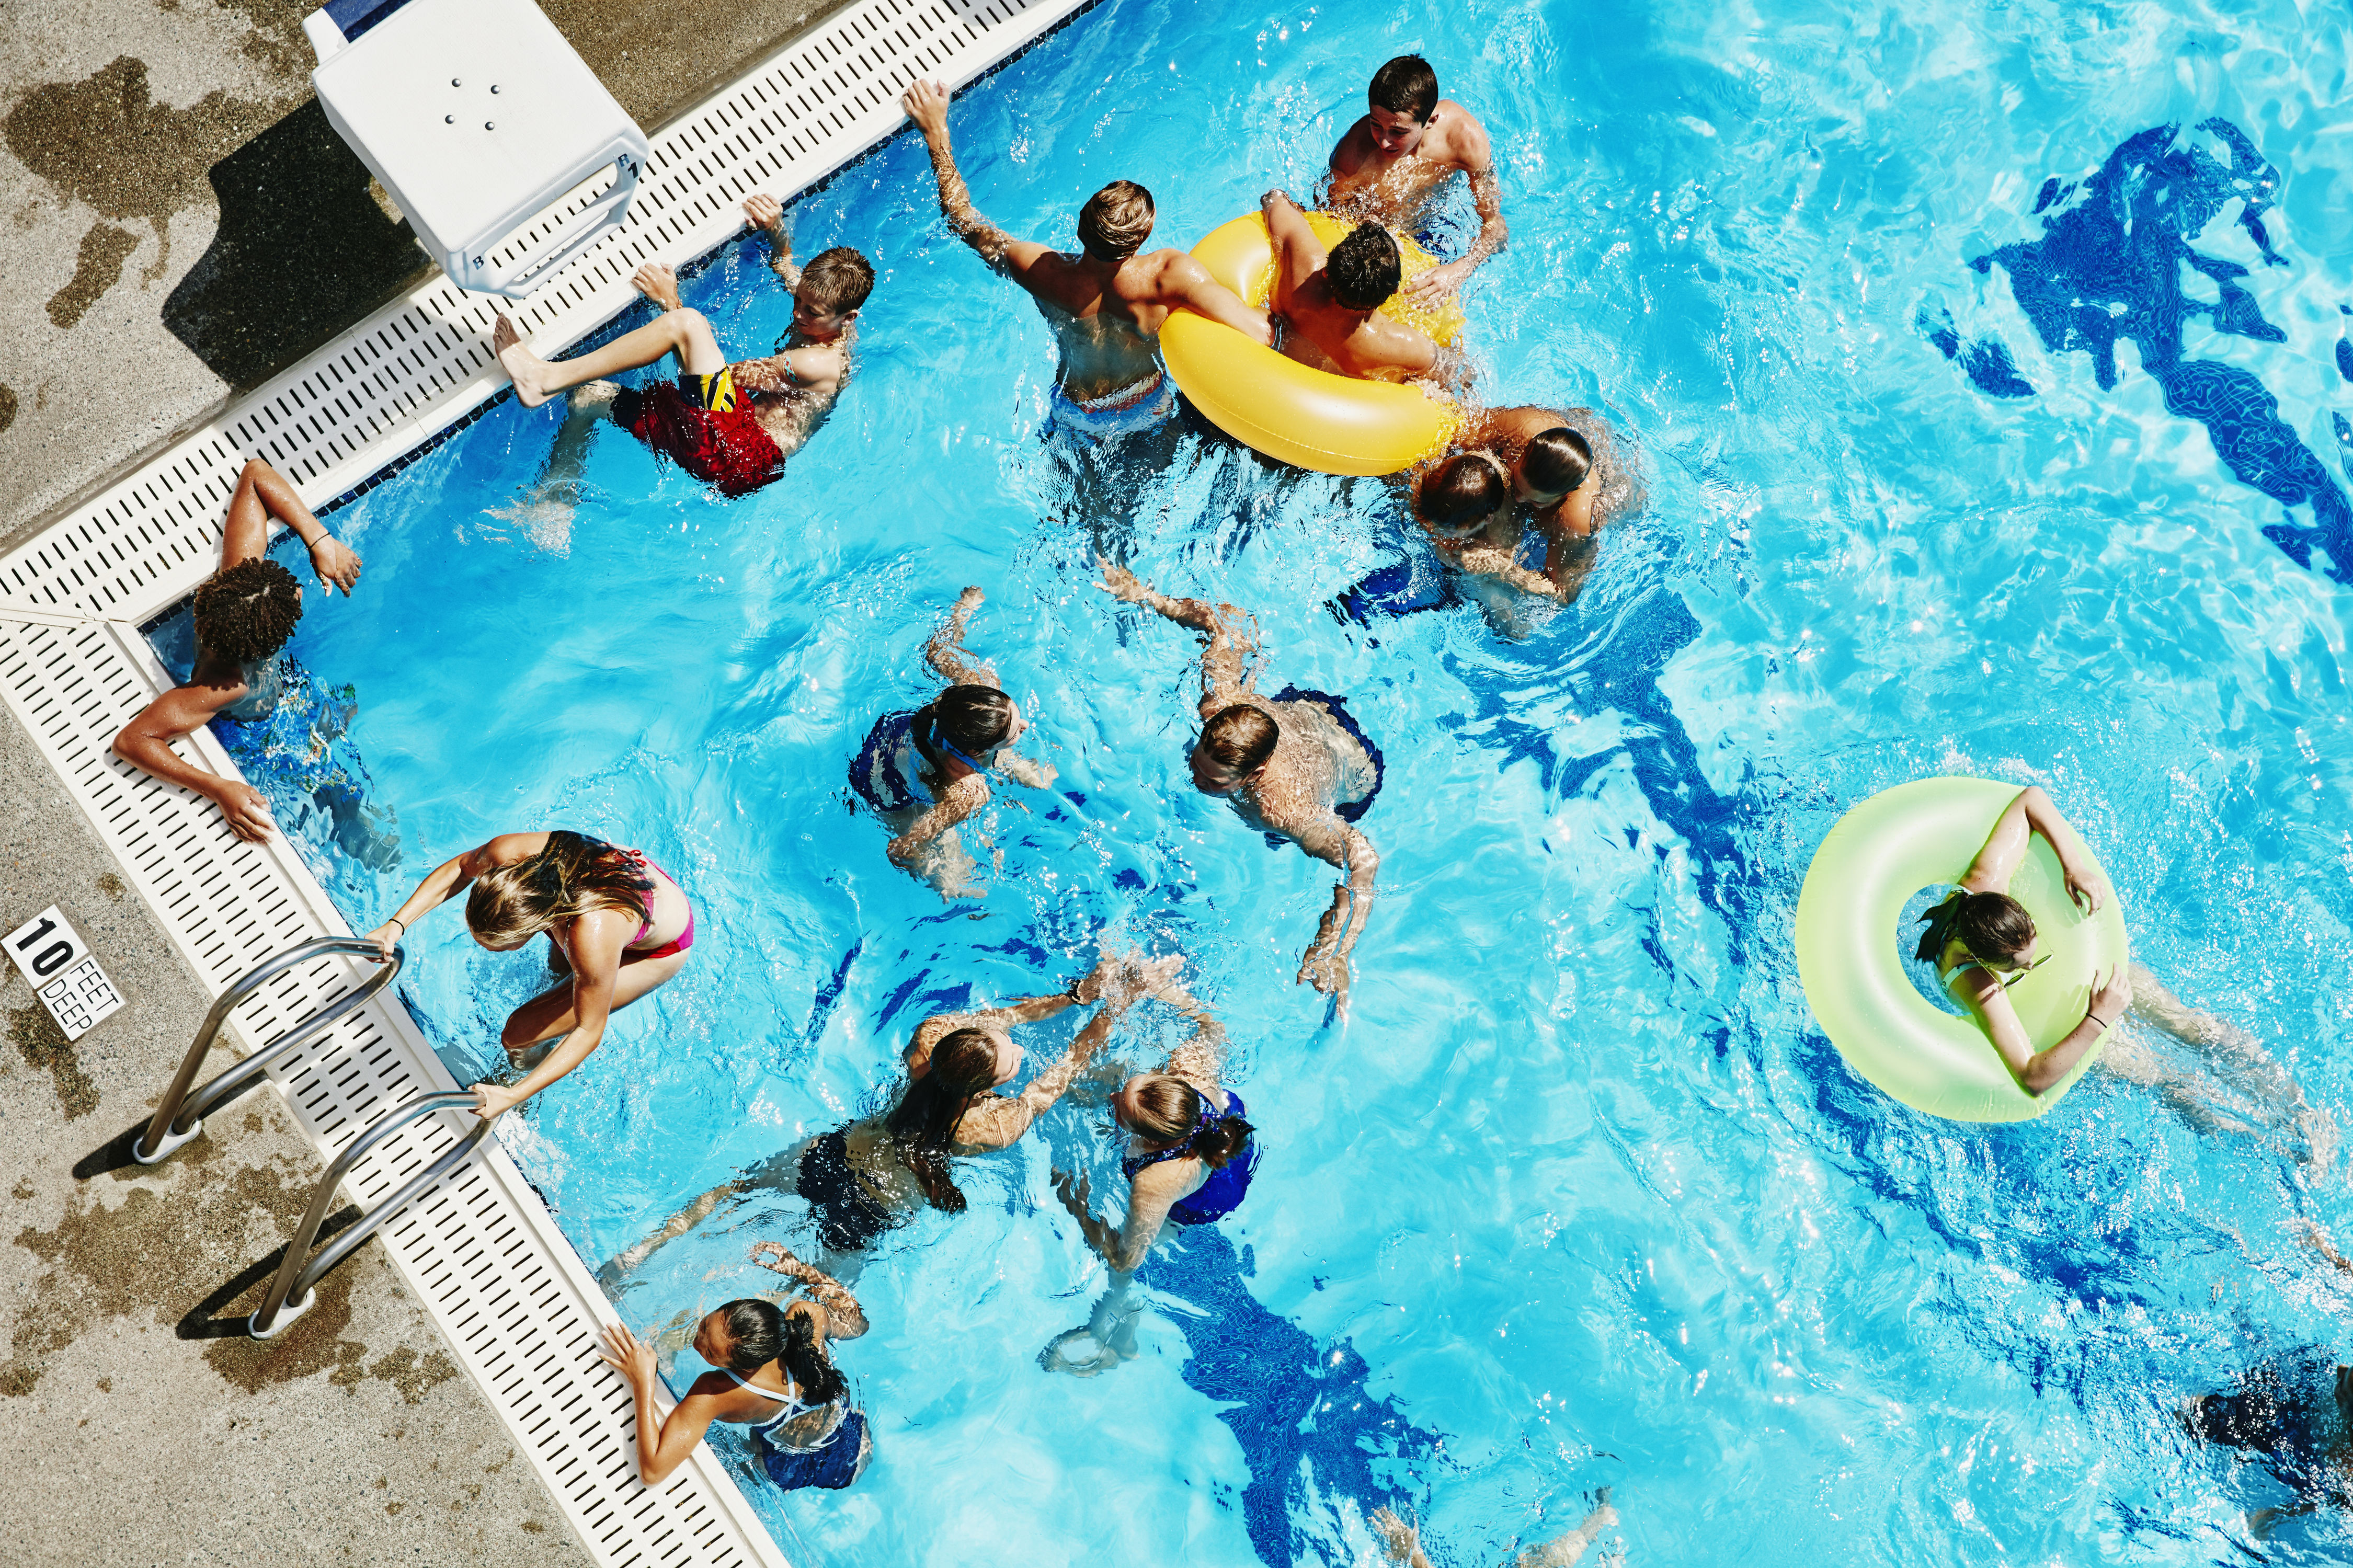 CDC Warns of Rising Threat of Fecal Parasite in Swimming Pools